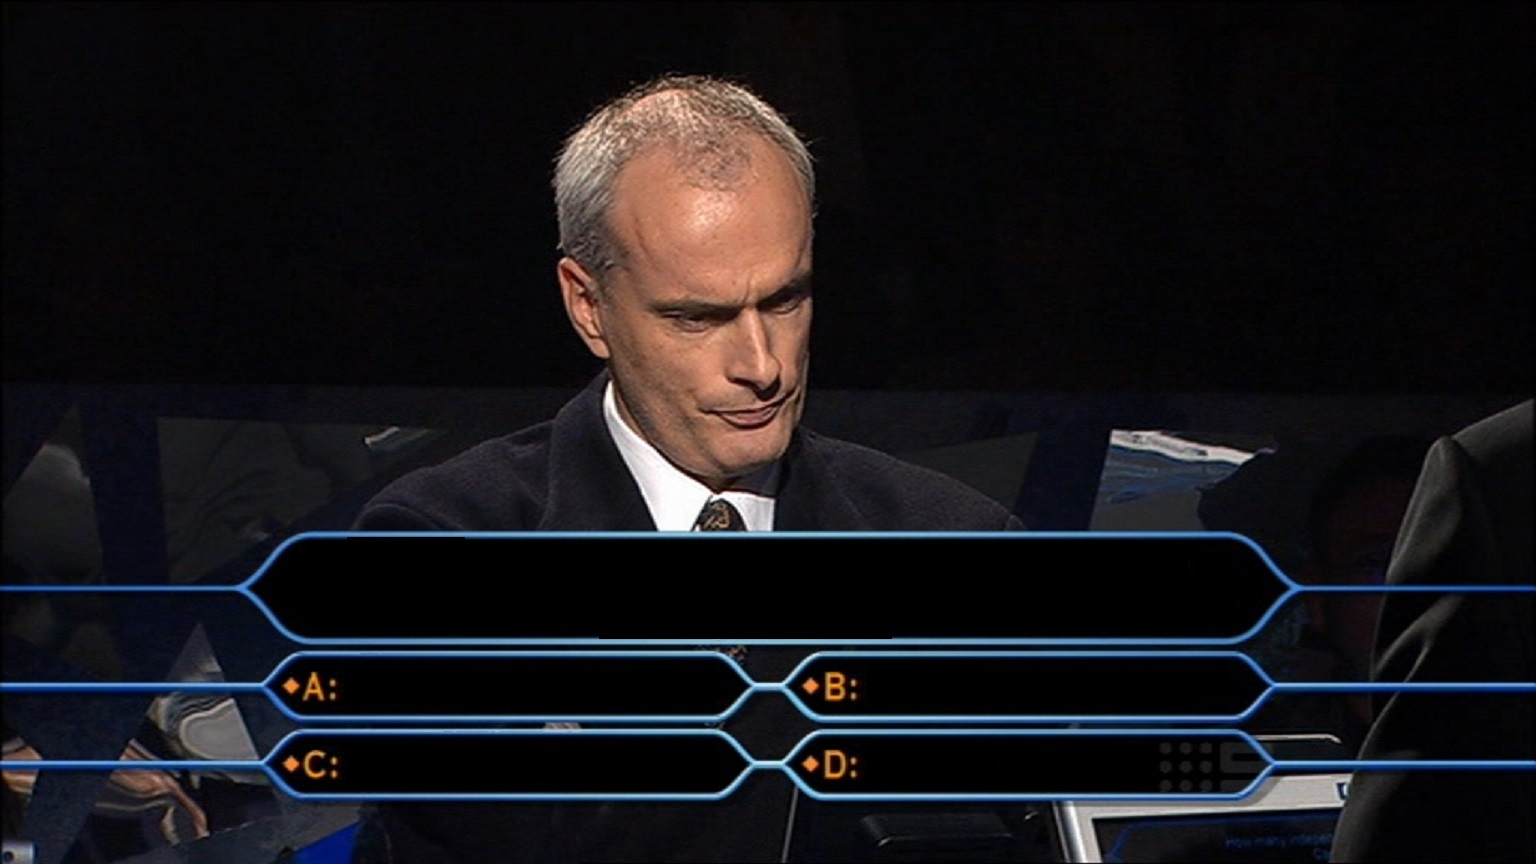 Who wants to be a millionaire template.